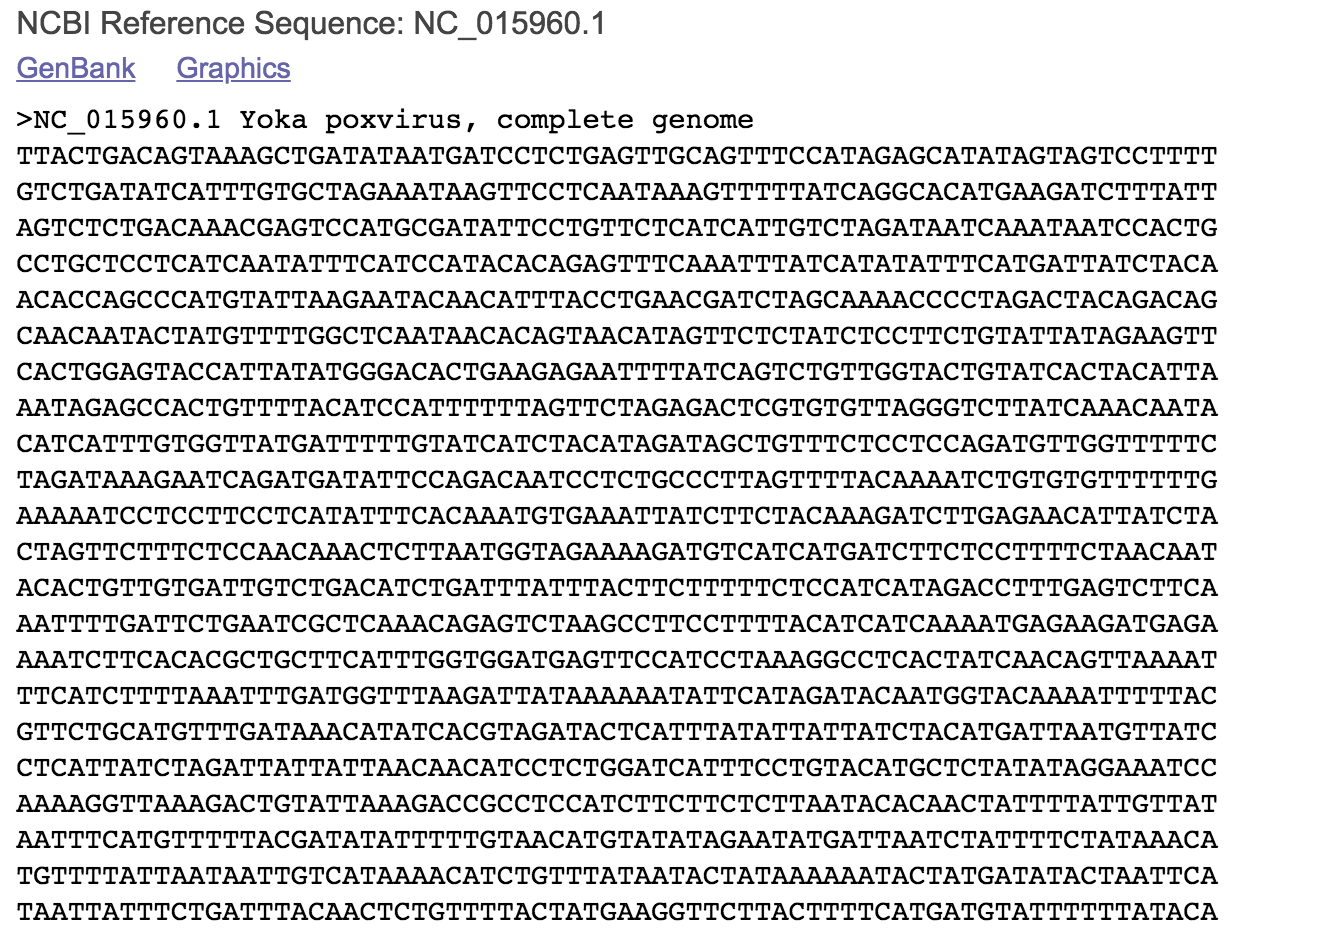 Genome Analysis-Data Retrieval-NCBI (2).